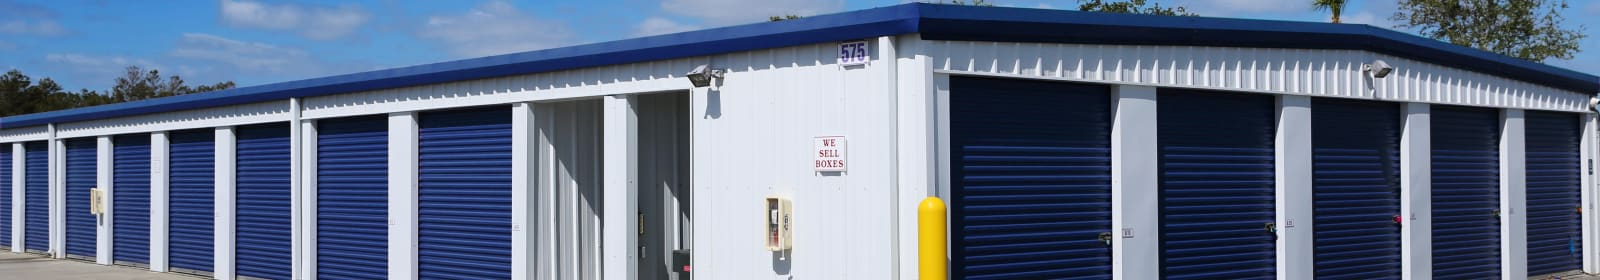 Reviews of Midgard Self Storage in Melbourne, Florida